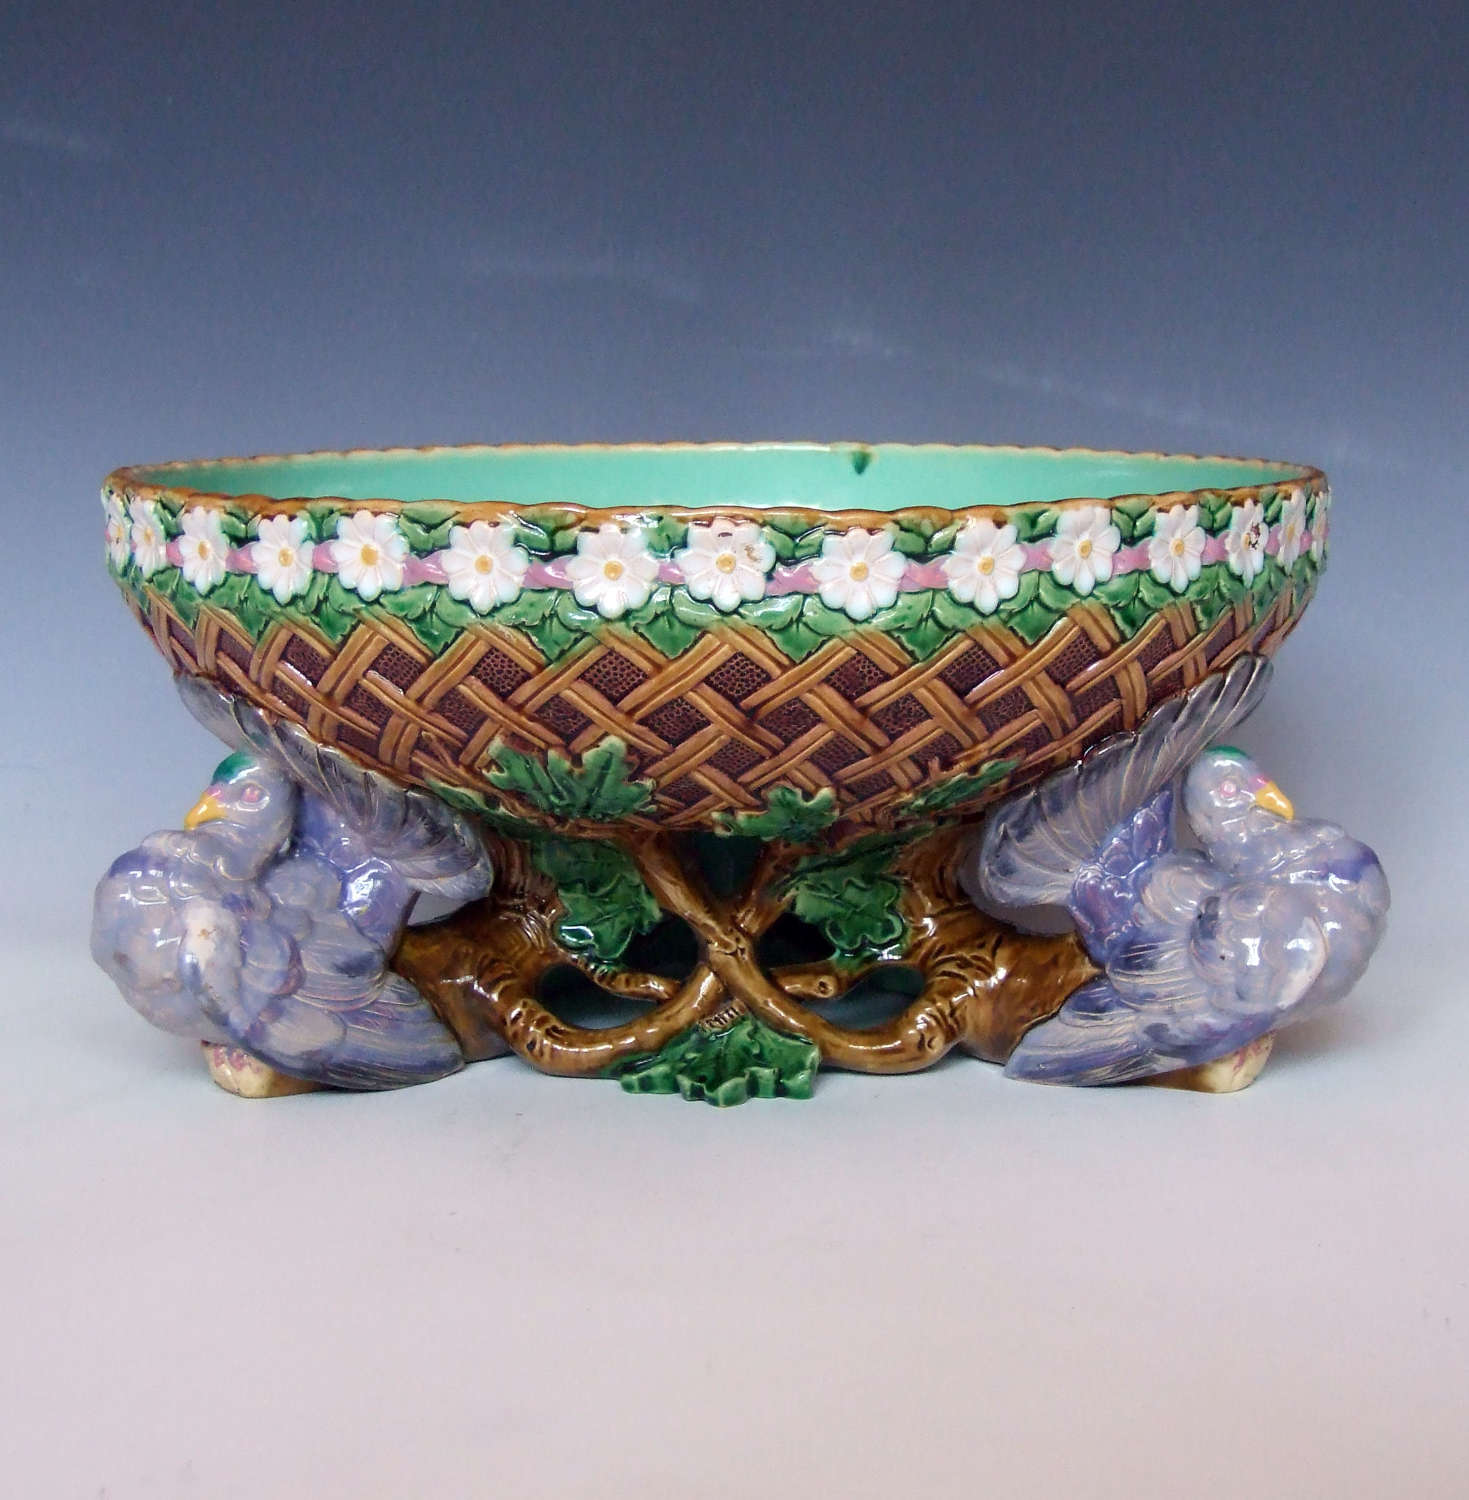 Fine Minton large majolica fantail pigeon and lattice bowl.